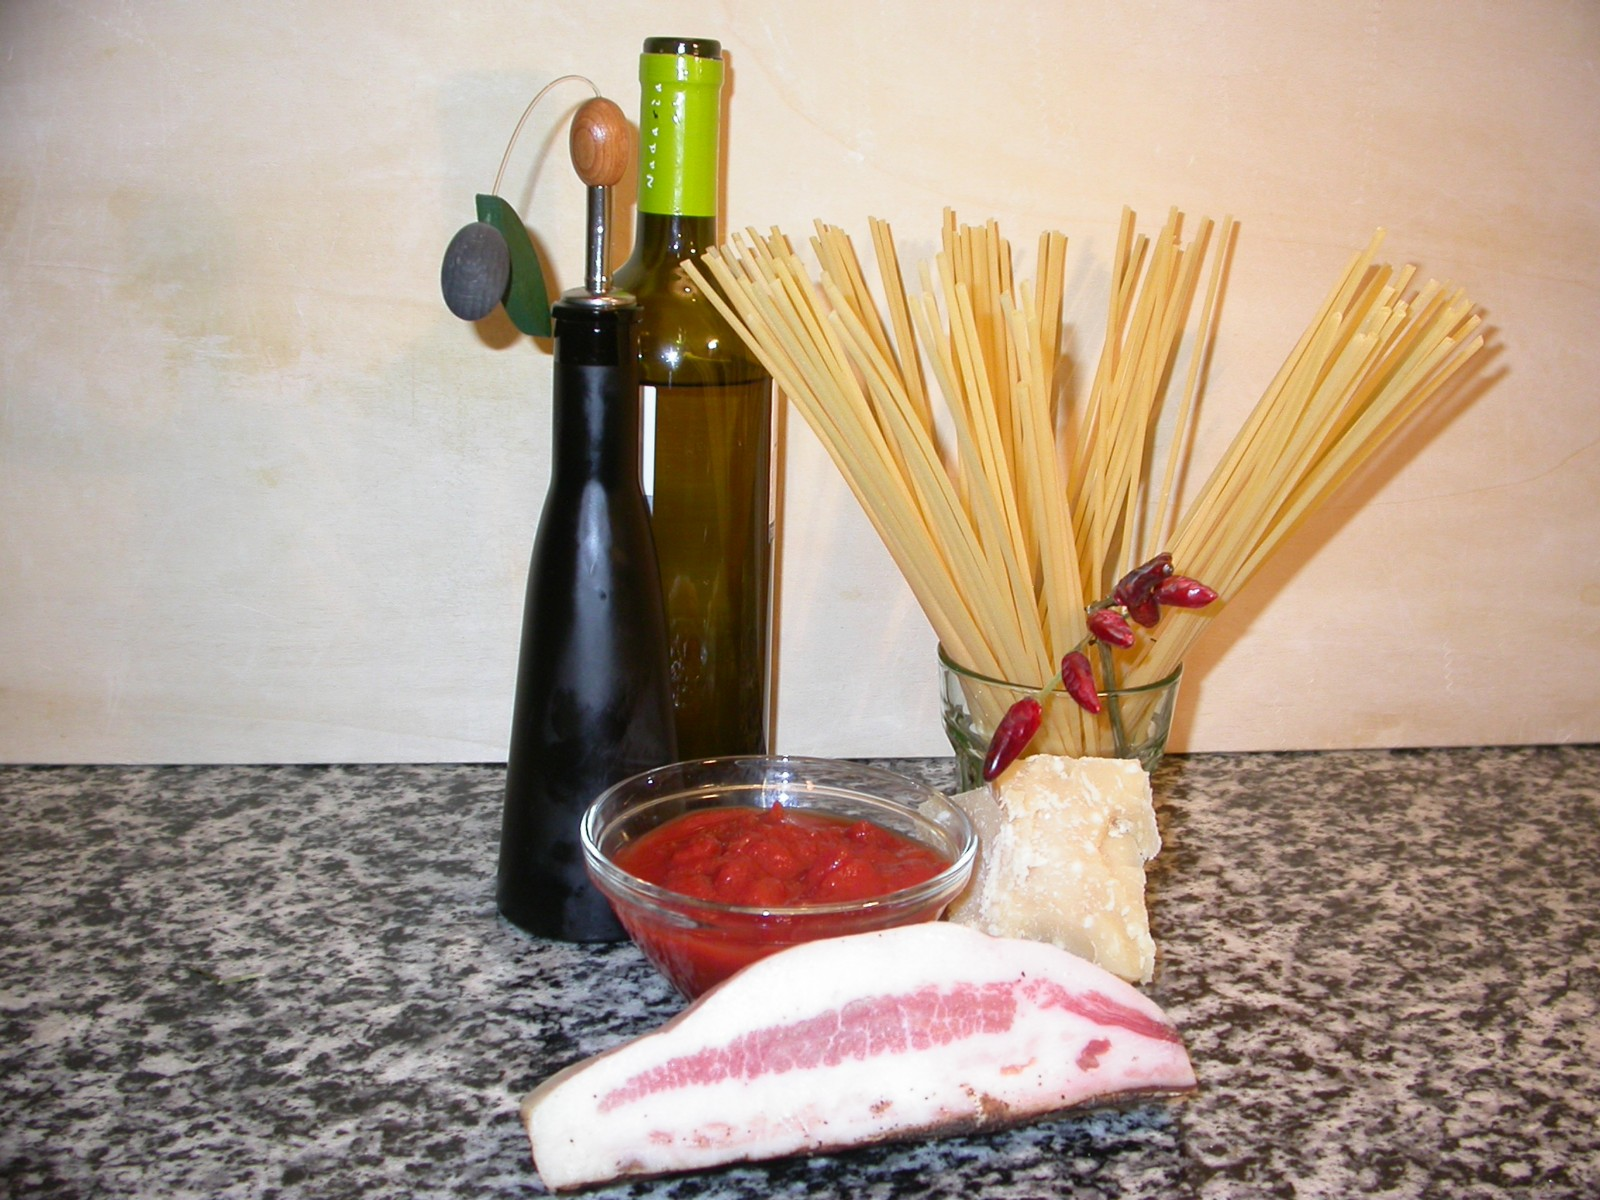 Ingredients for Amatriciana